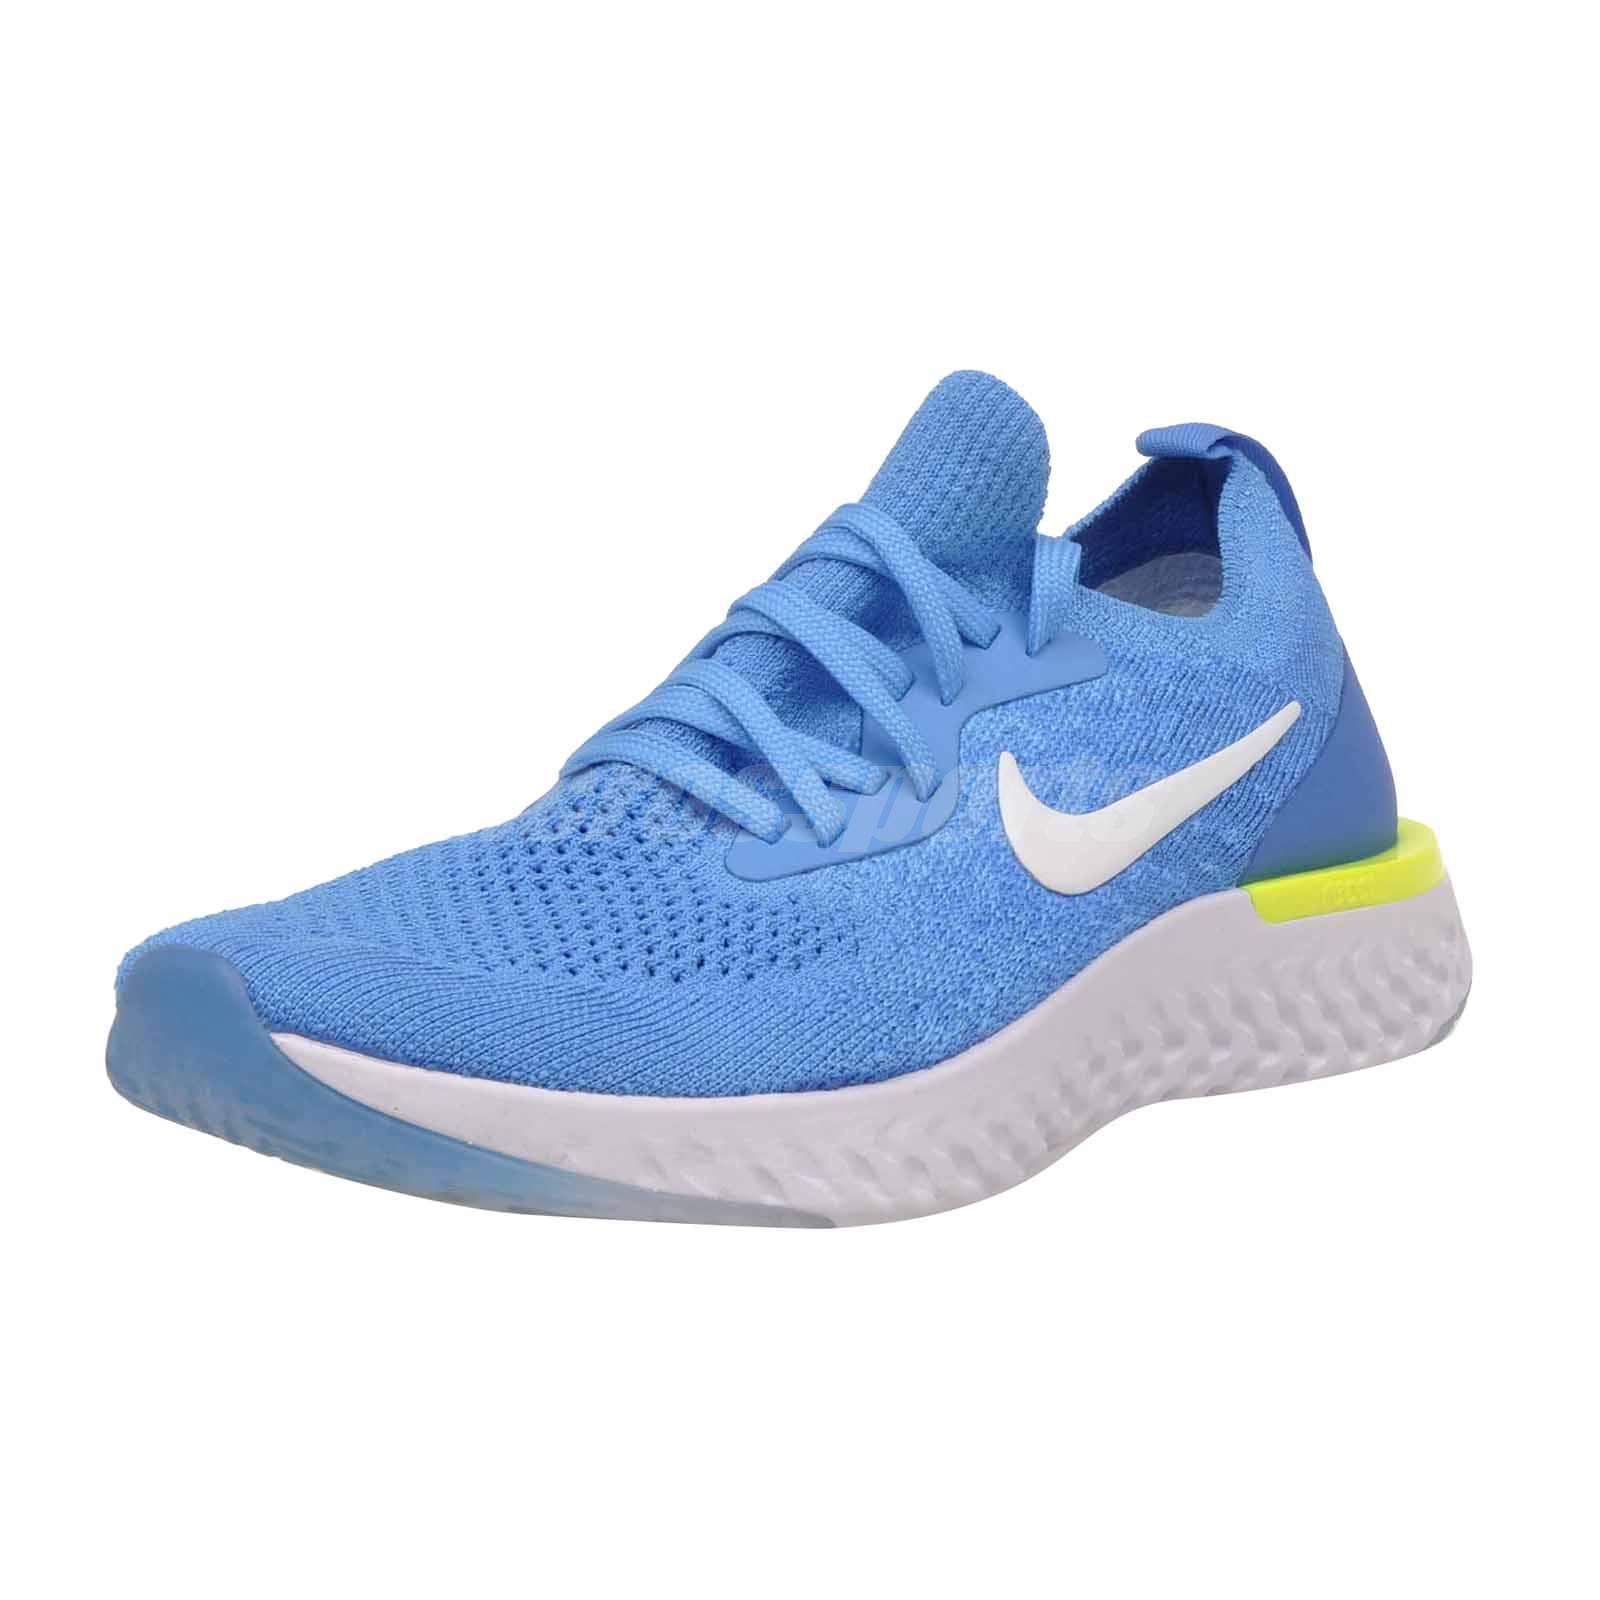 a765a84966 Nike Epic React Flyknit GS Kids Youth Running Shoes Blue Glow 943311 ...